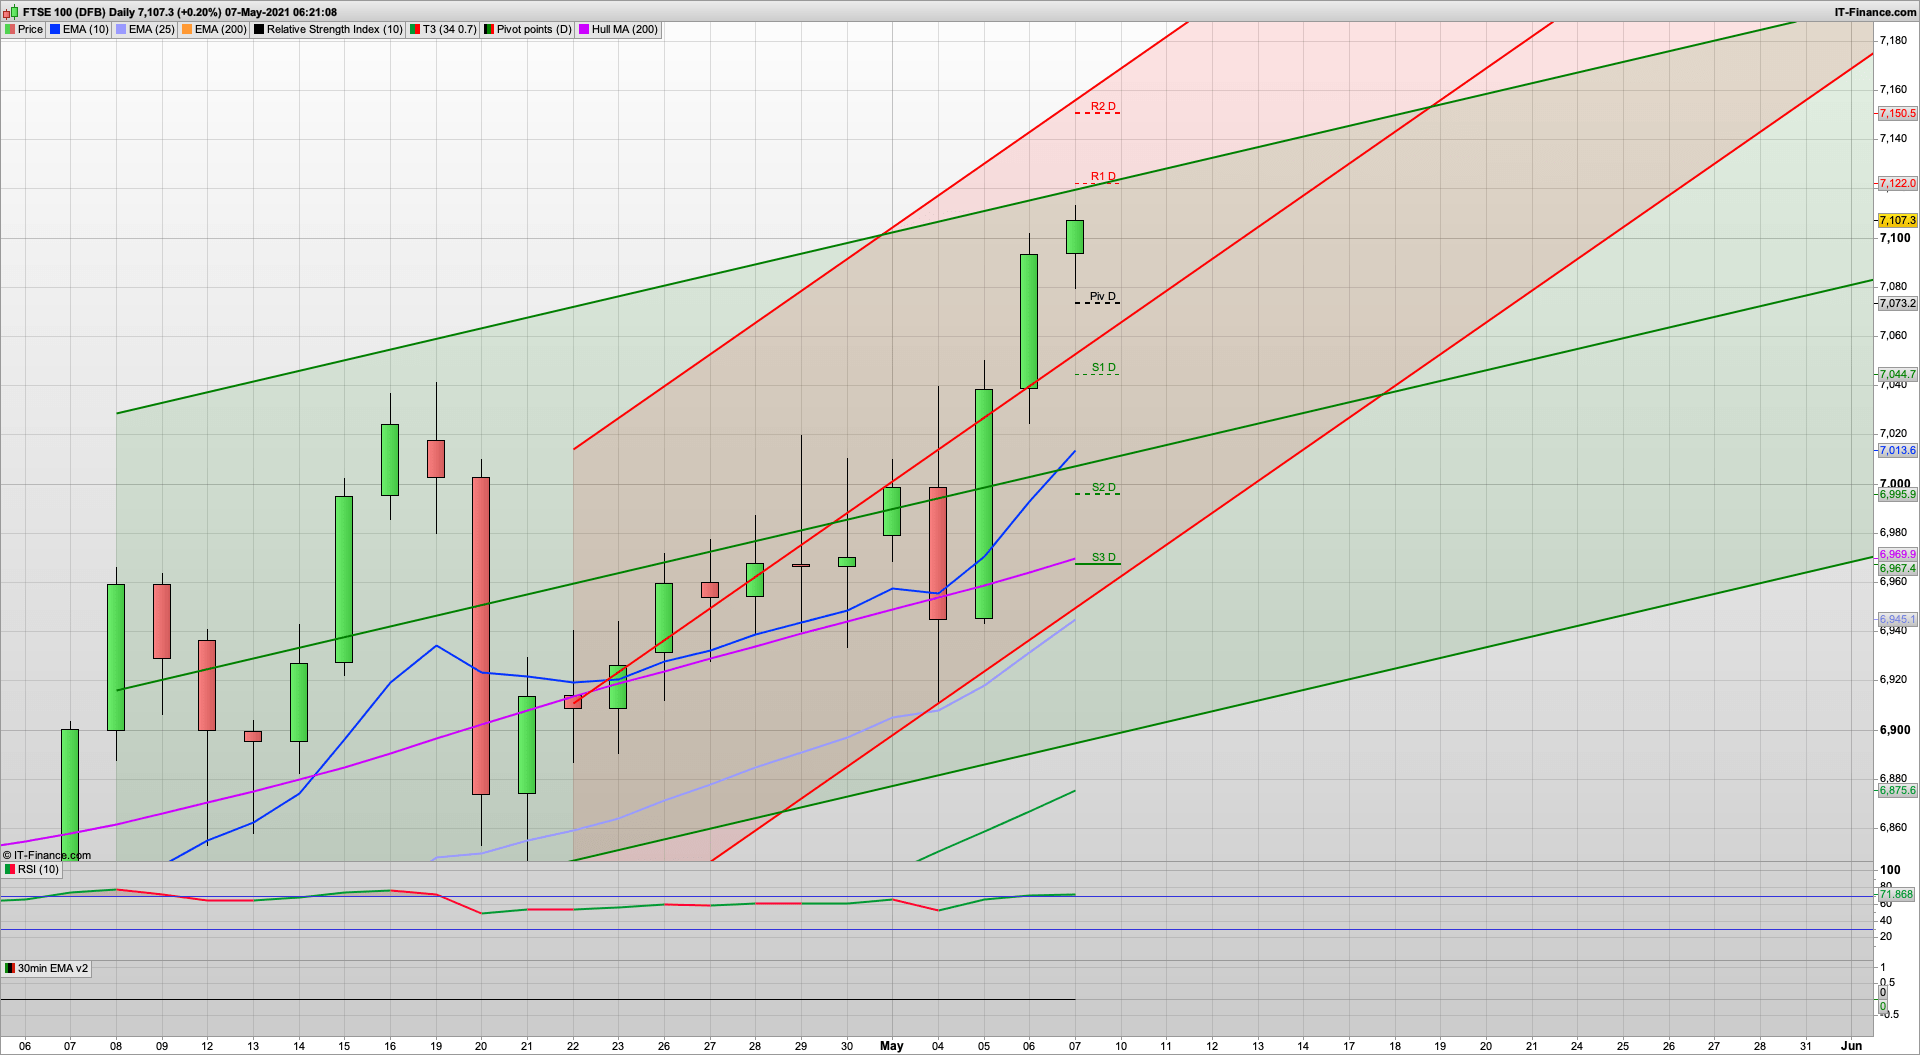 NFP Friday with bulls in charge | 7124 7155 resistance | 7073 7030 support